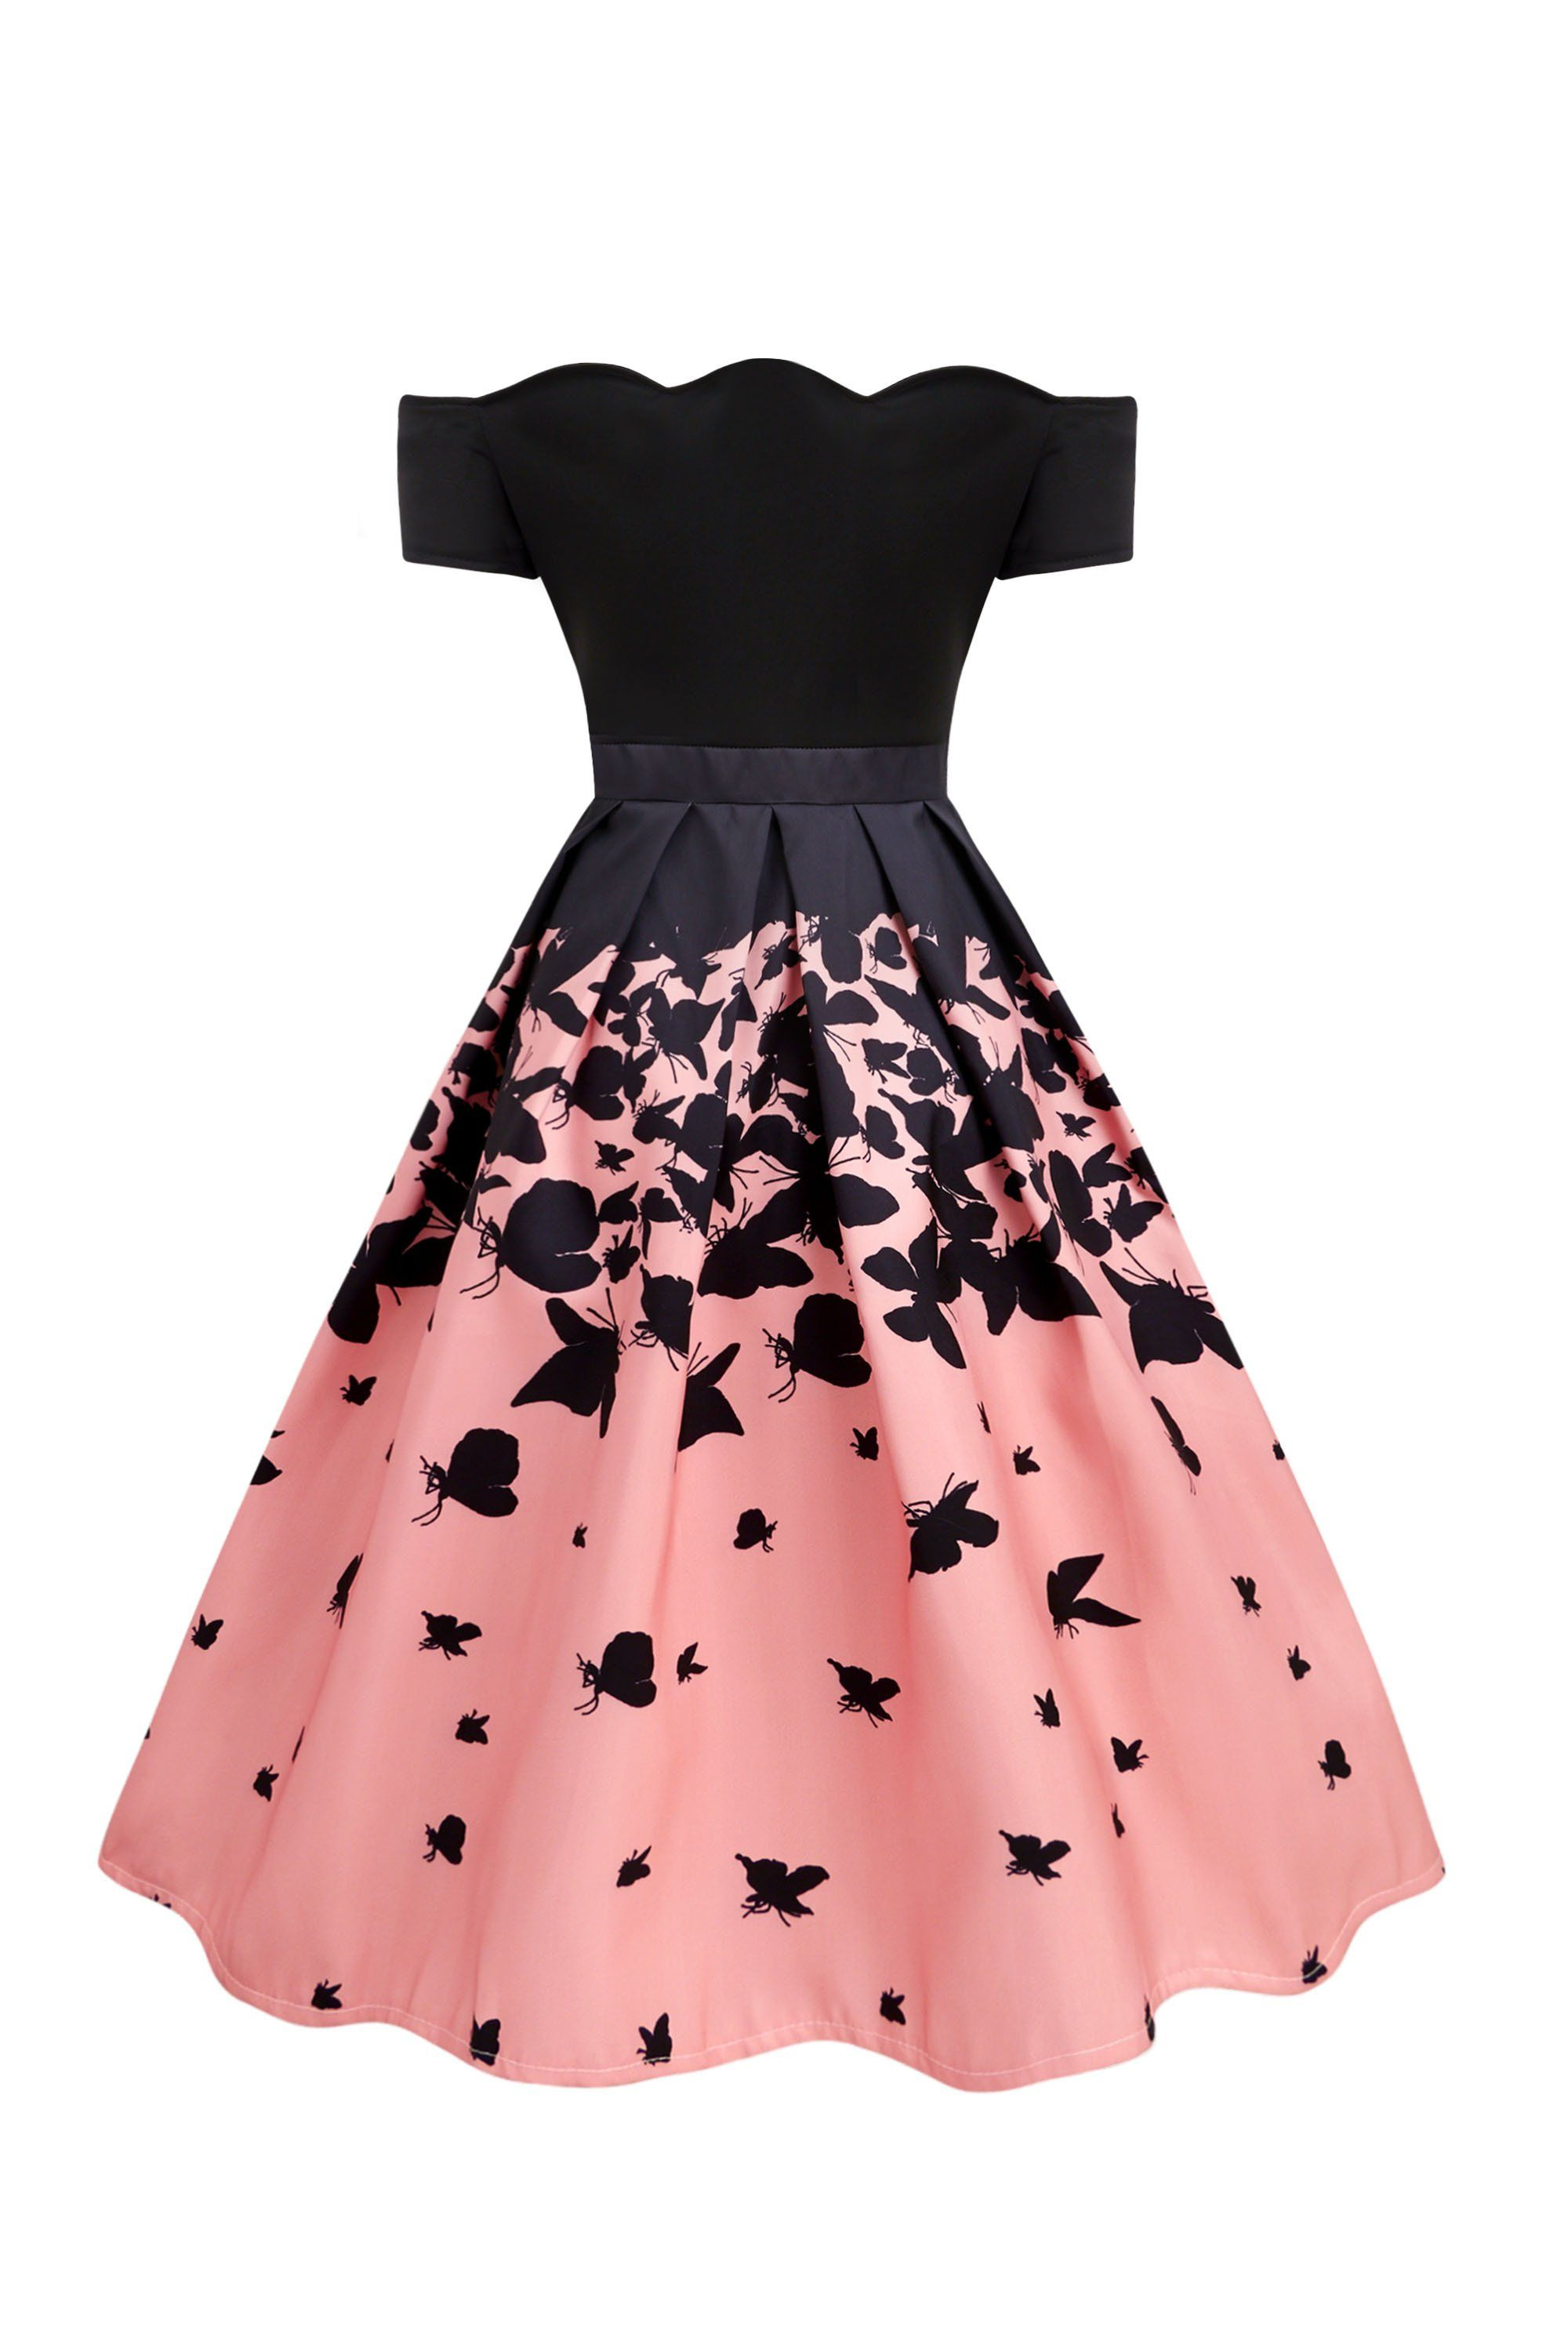 a9363db129ce Black 1950s Butterfly Swing Dress – Retro Stage - Chic Vintage Dresses and  Accessories